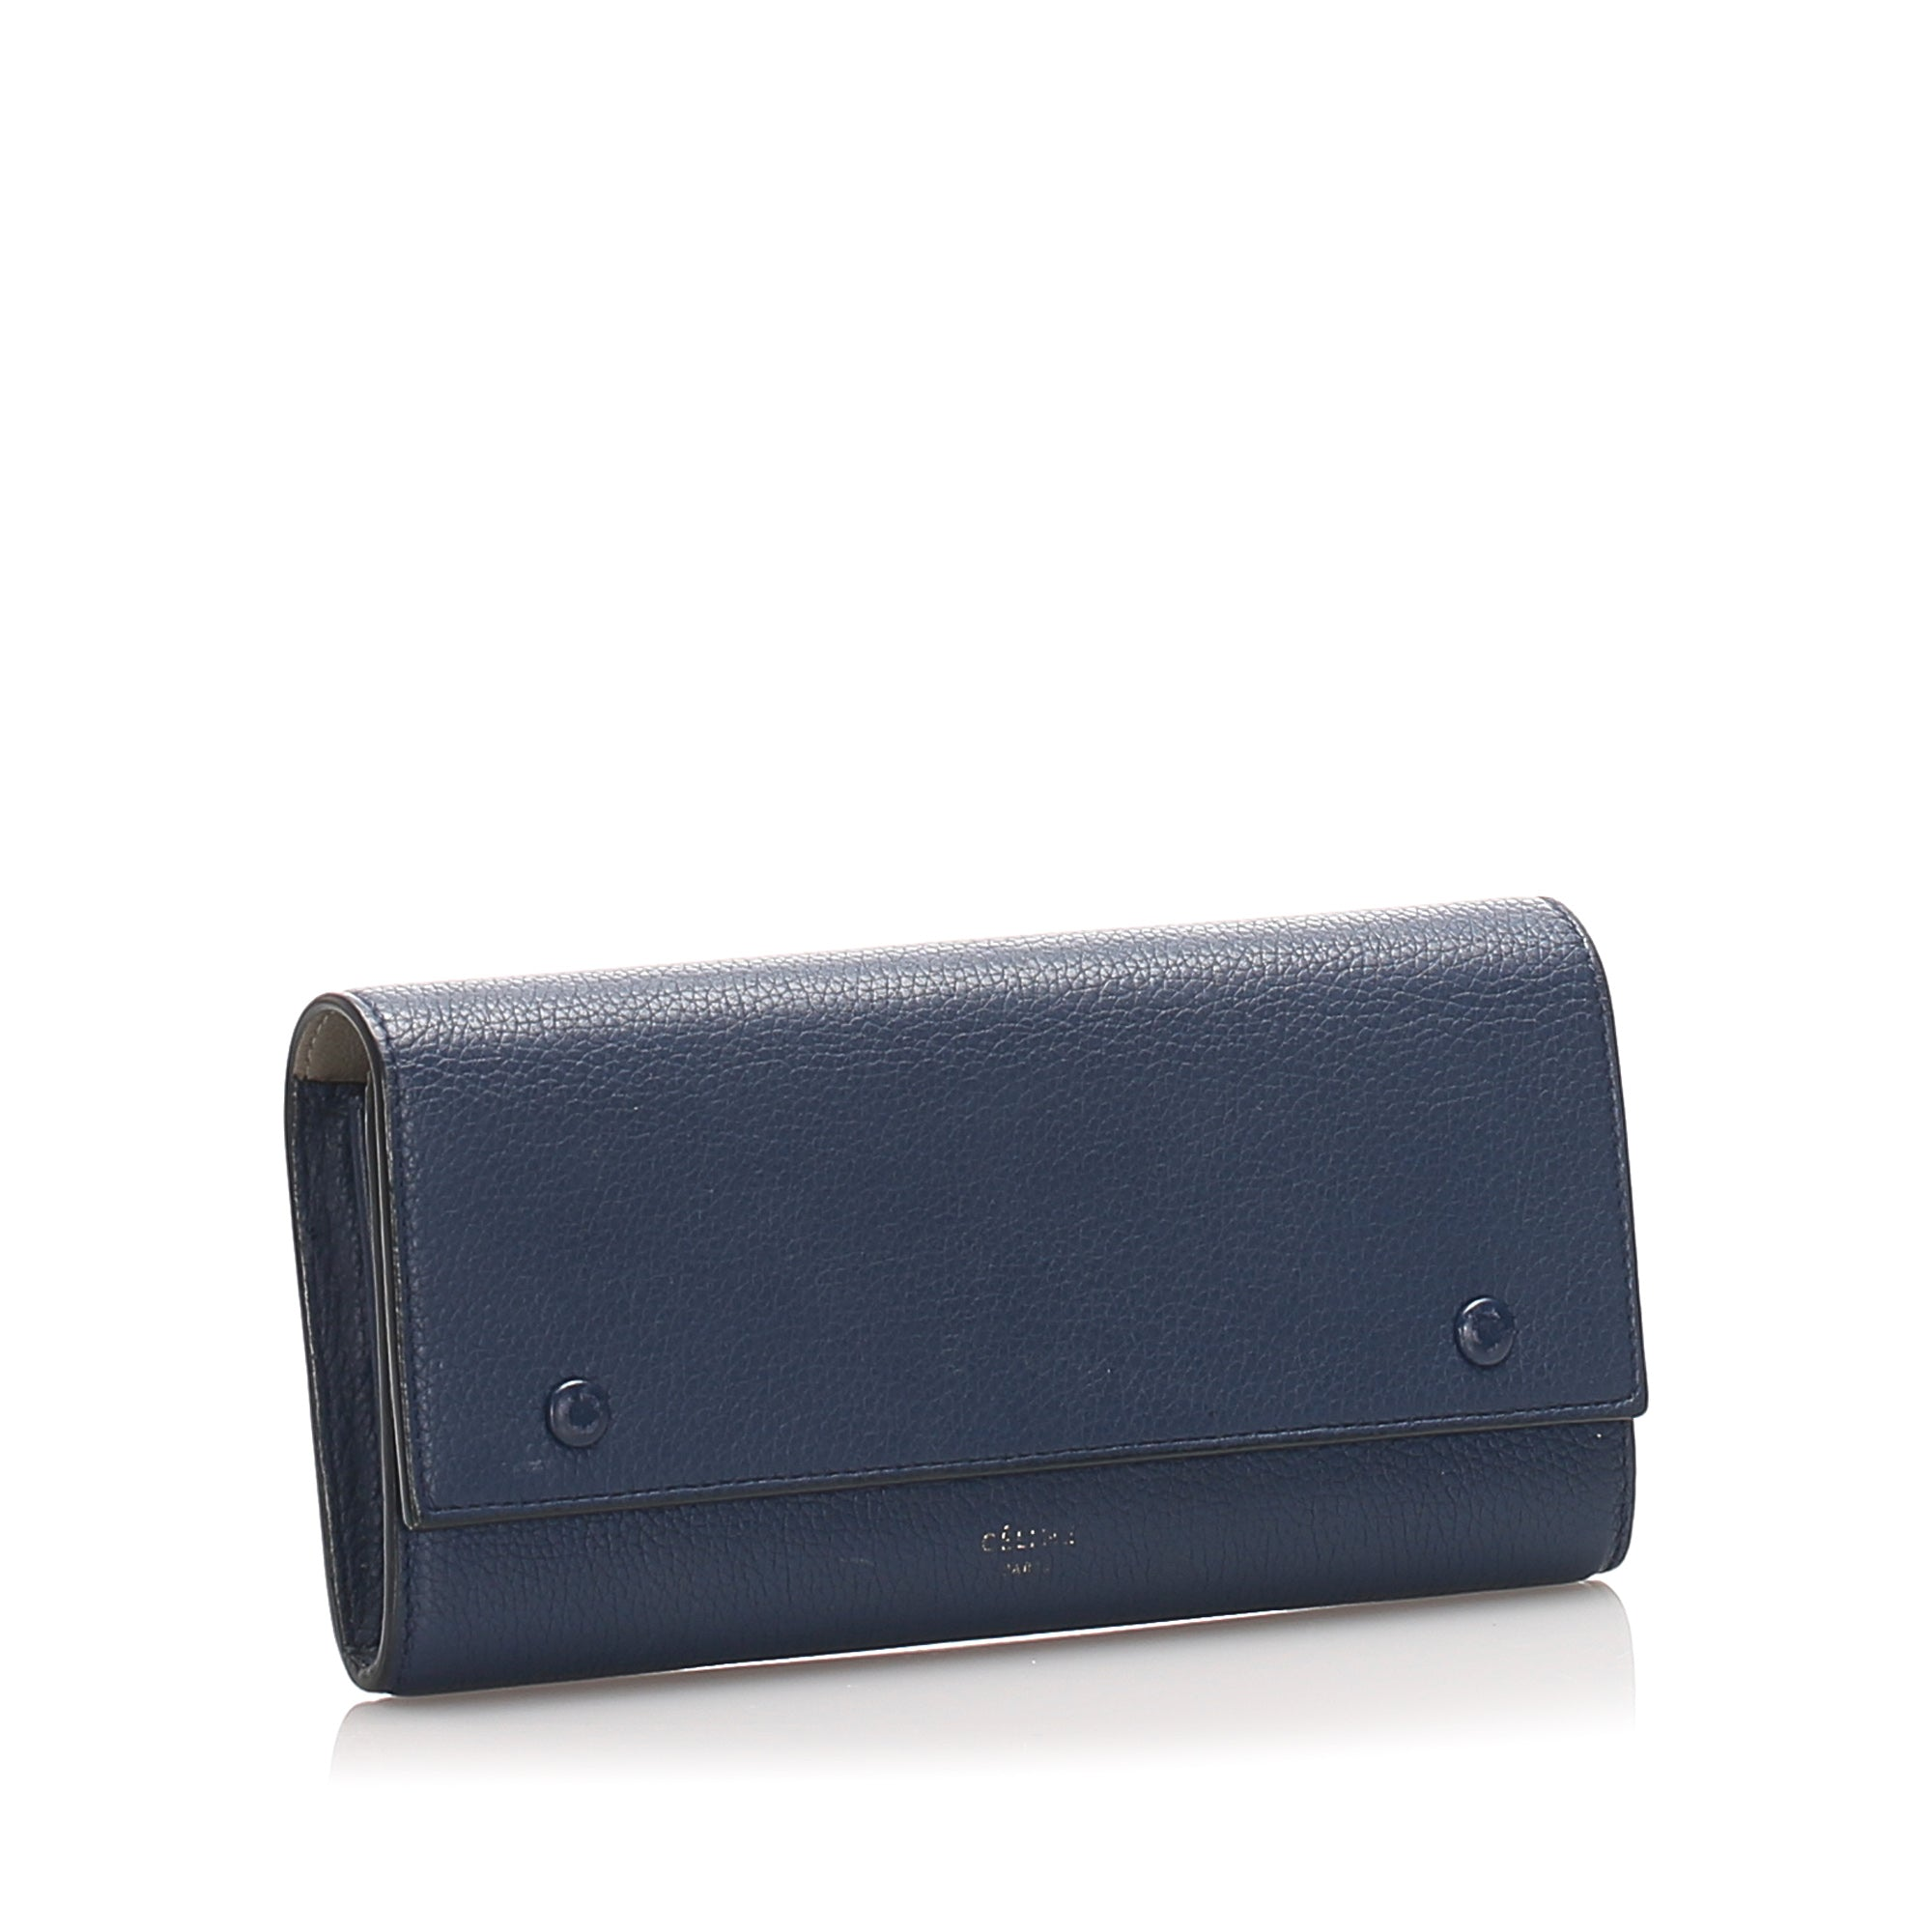 Celine Blue Continental Leather Wallet